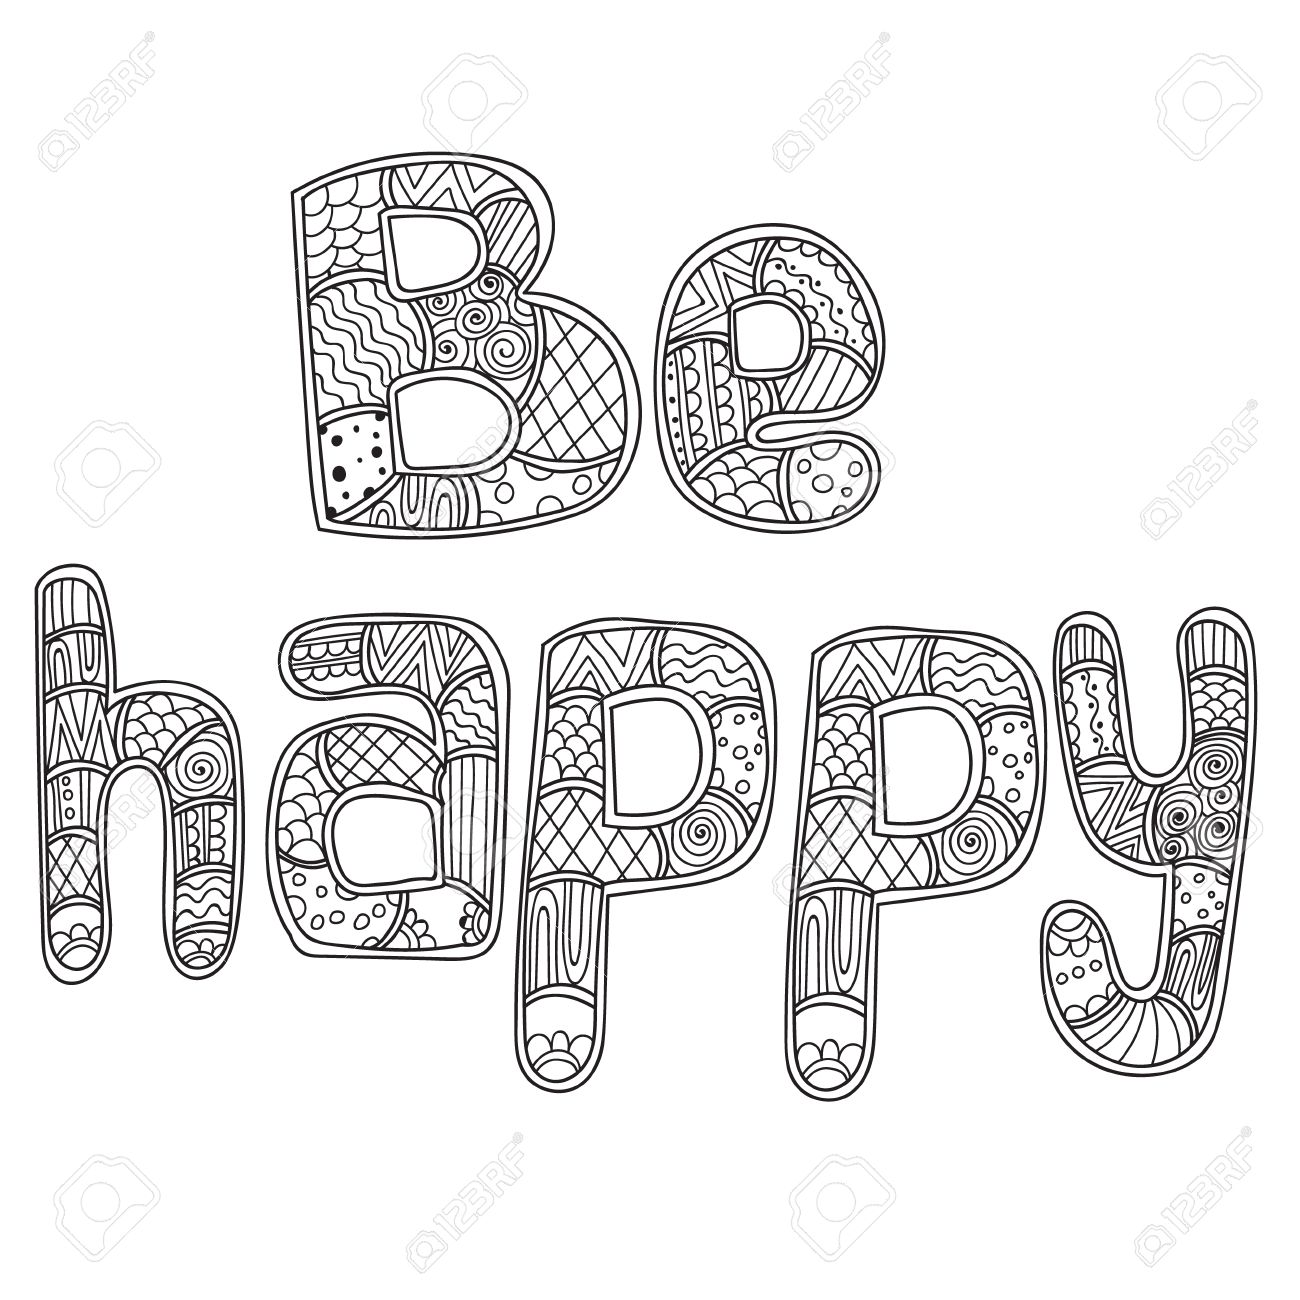 Coloring pages for adults coloring book lettering word be happy doodles stylized vector